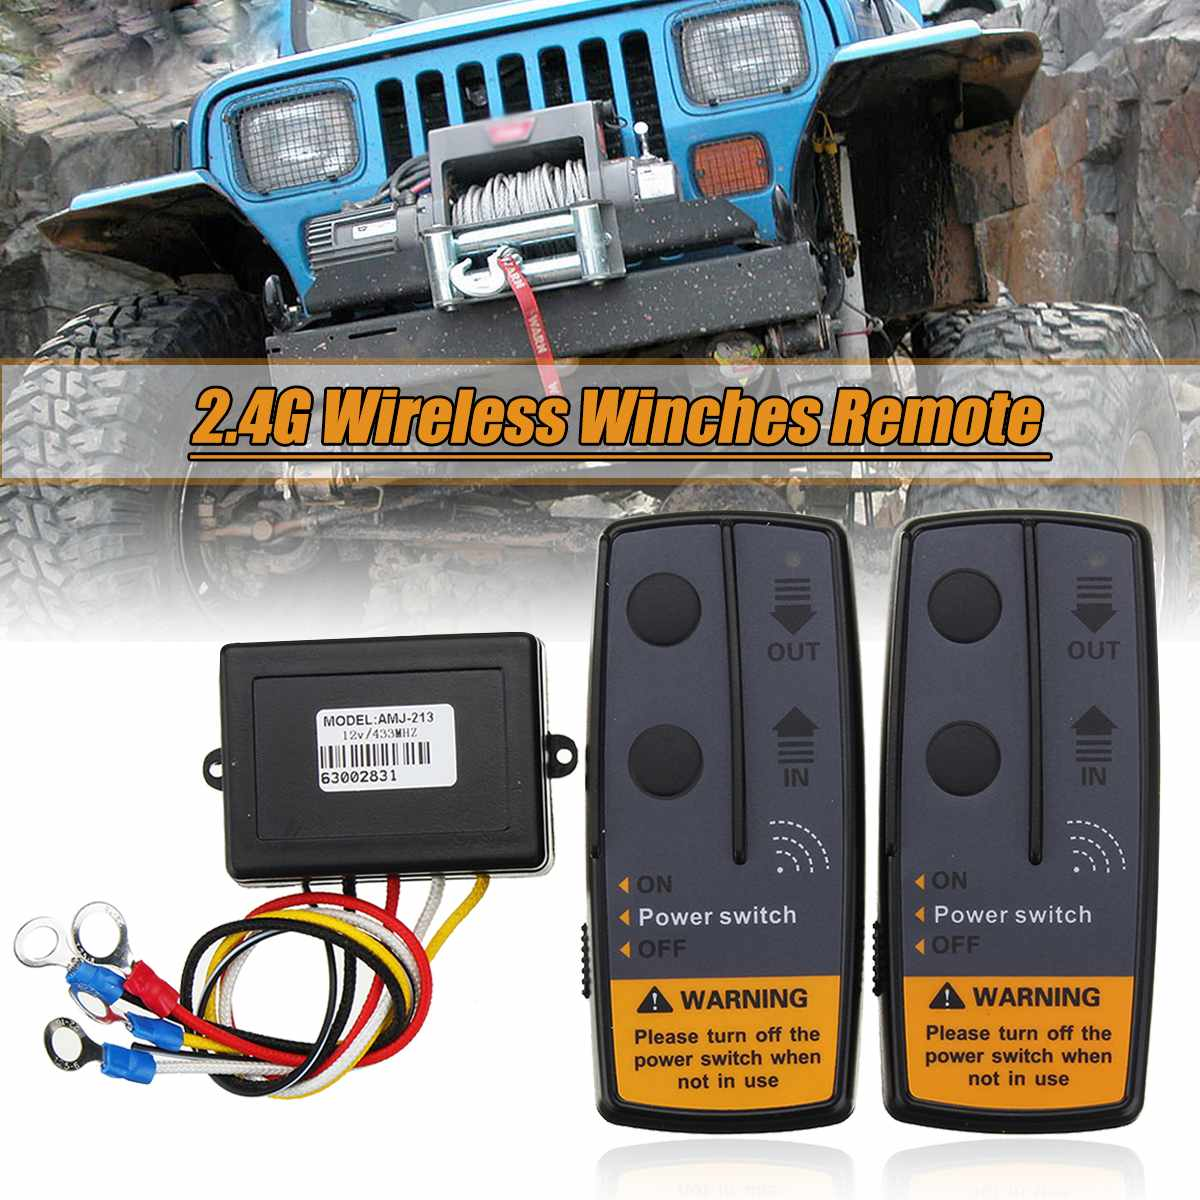 2.4G 12V 50M Digital Wireless Winches Remote Control Recovery Kit For Jeep SUV